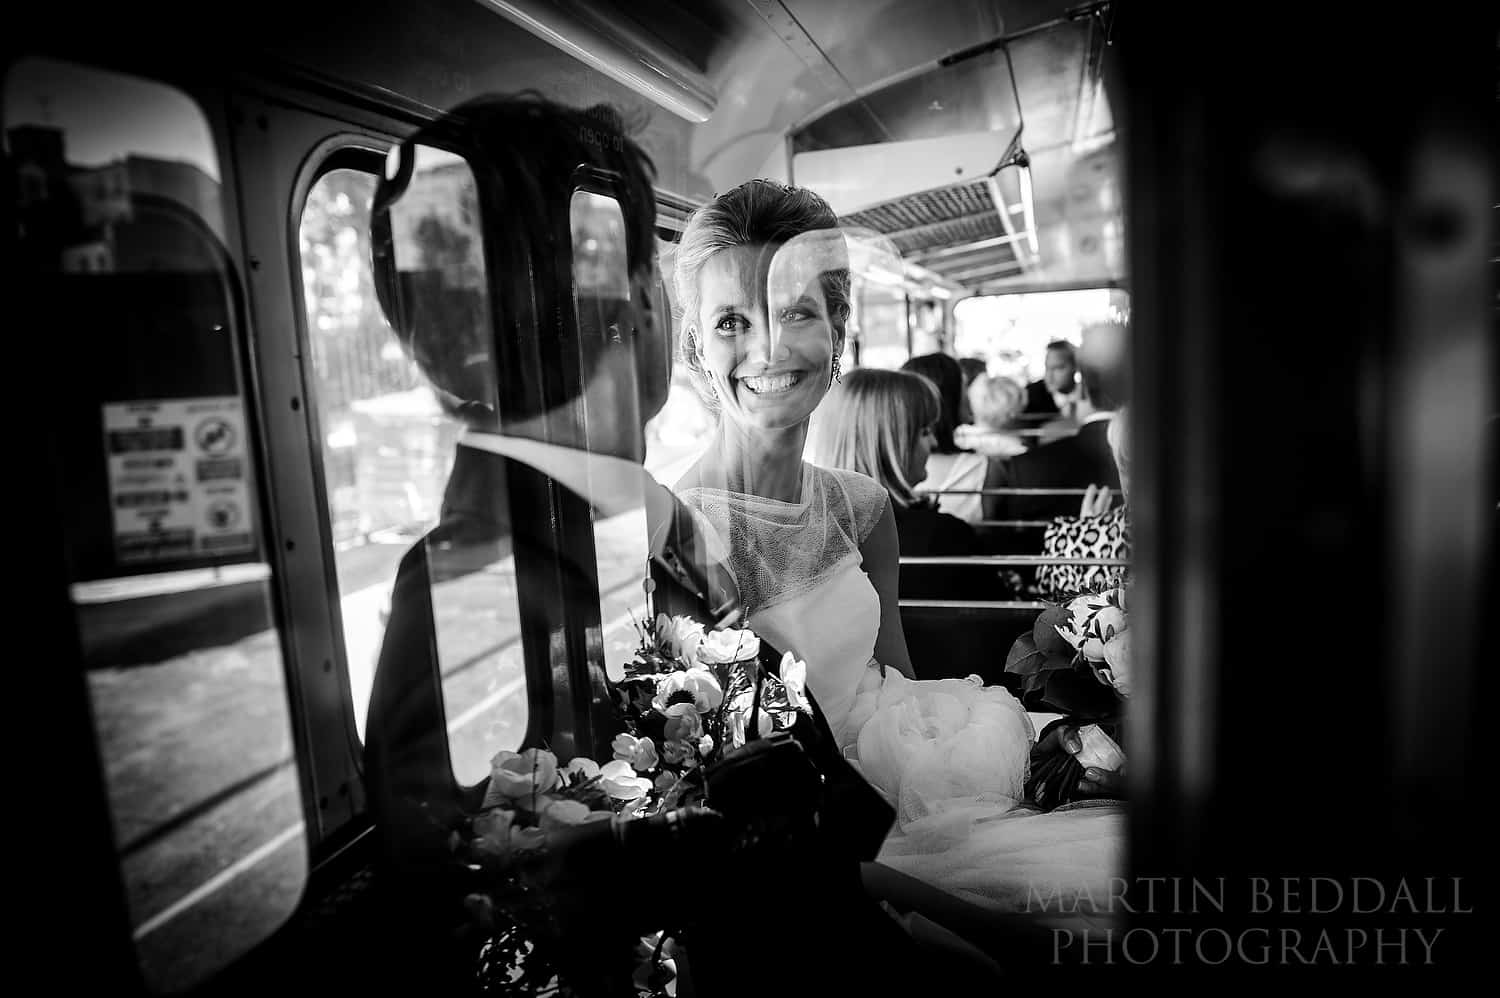 Bride smile at groom sat in wedding bus